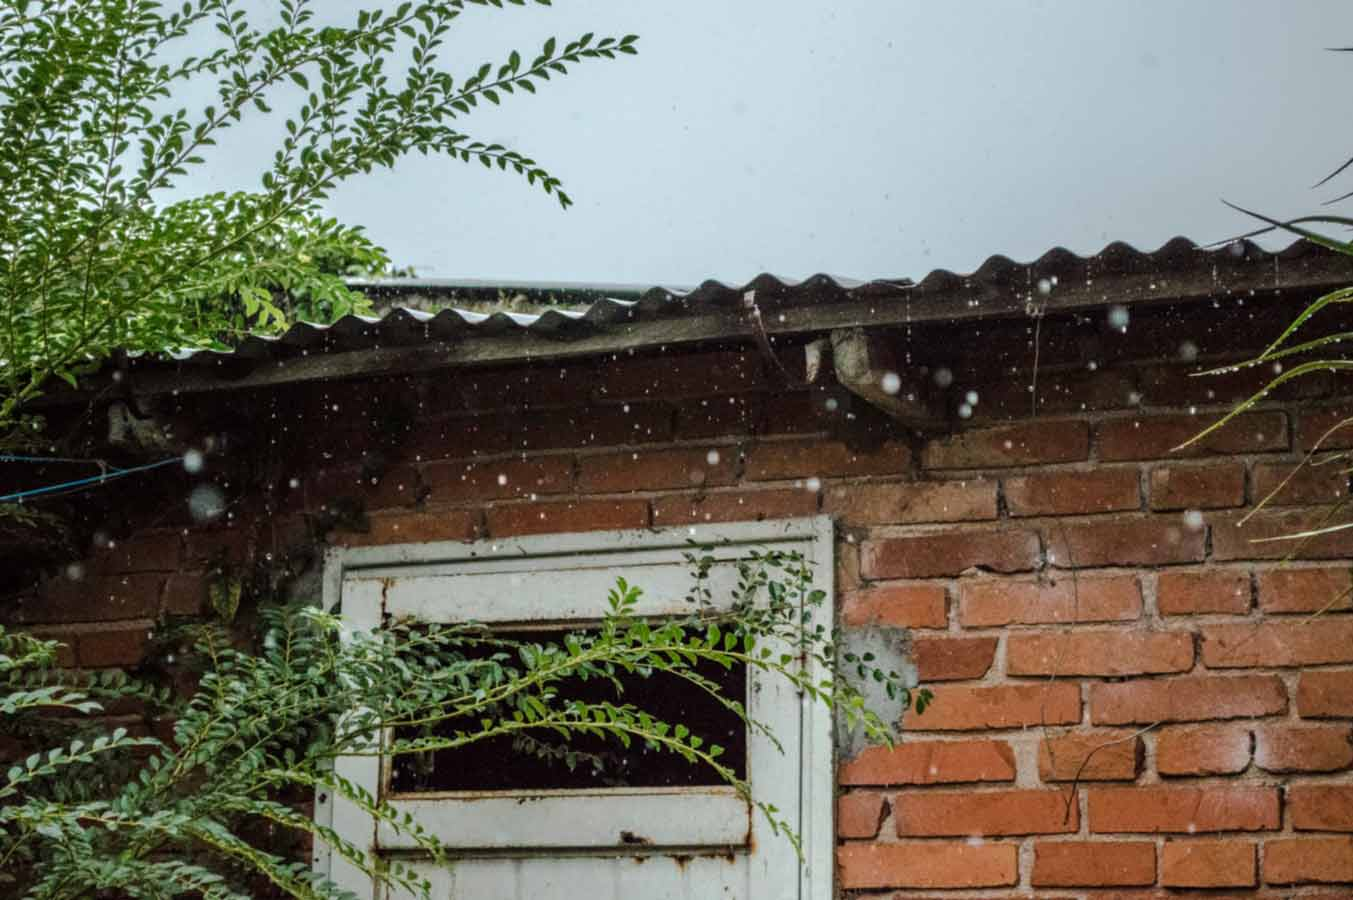 rainwater falling on the roof can damage the house